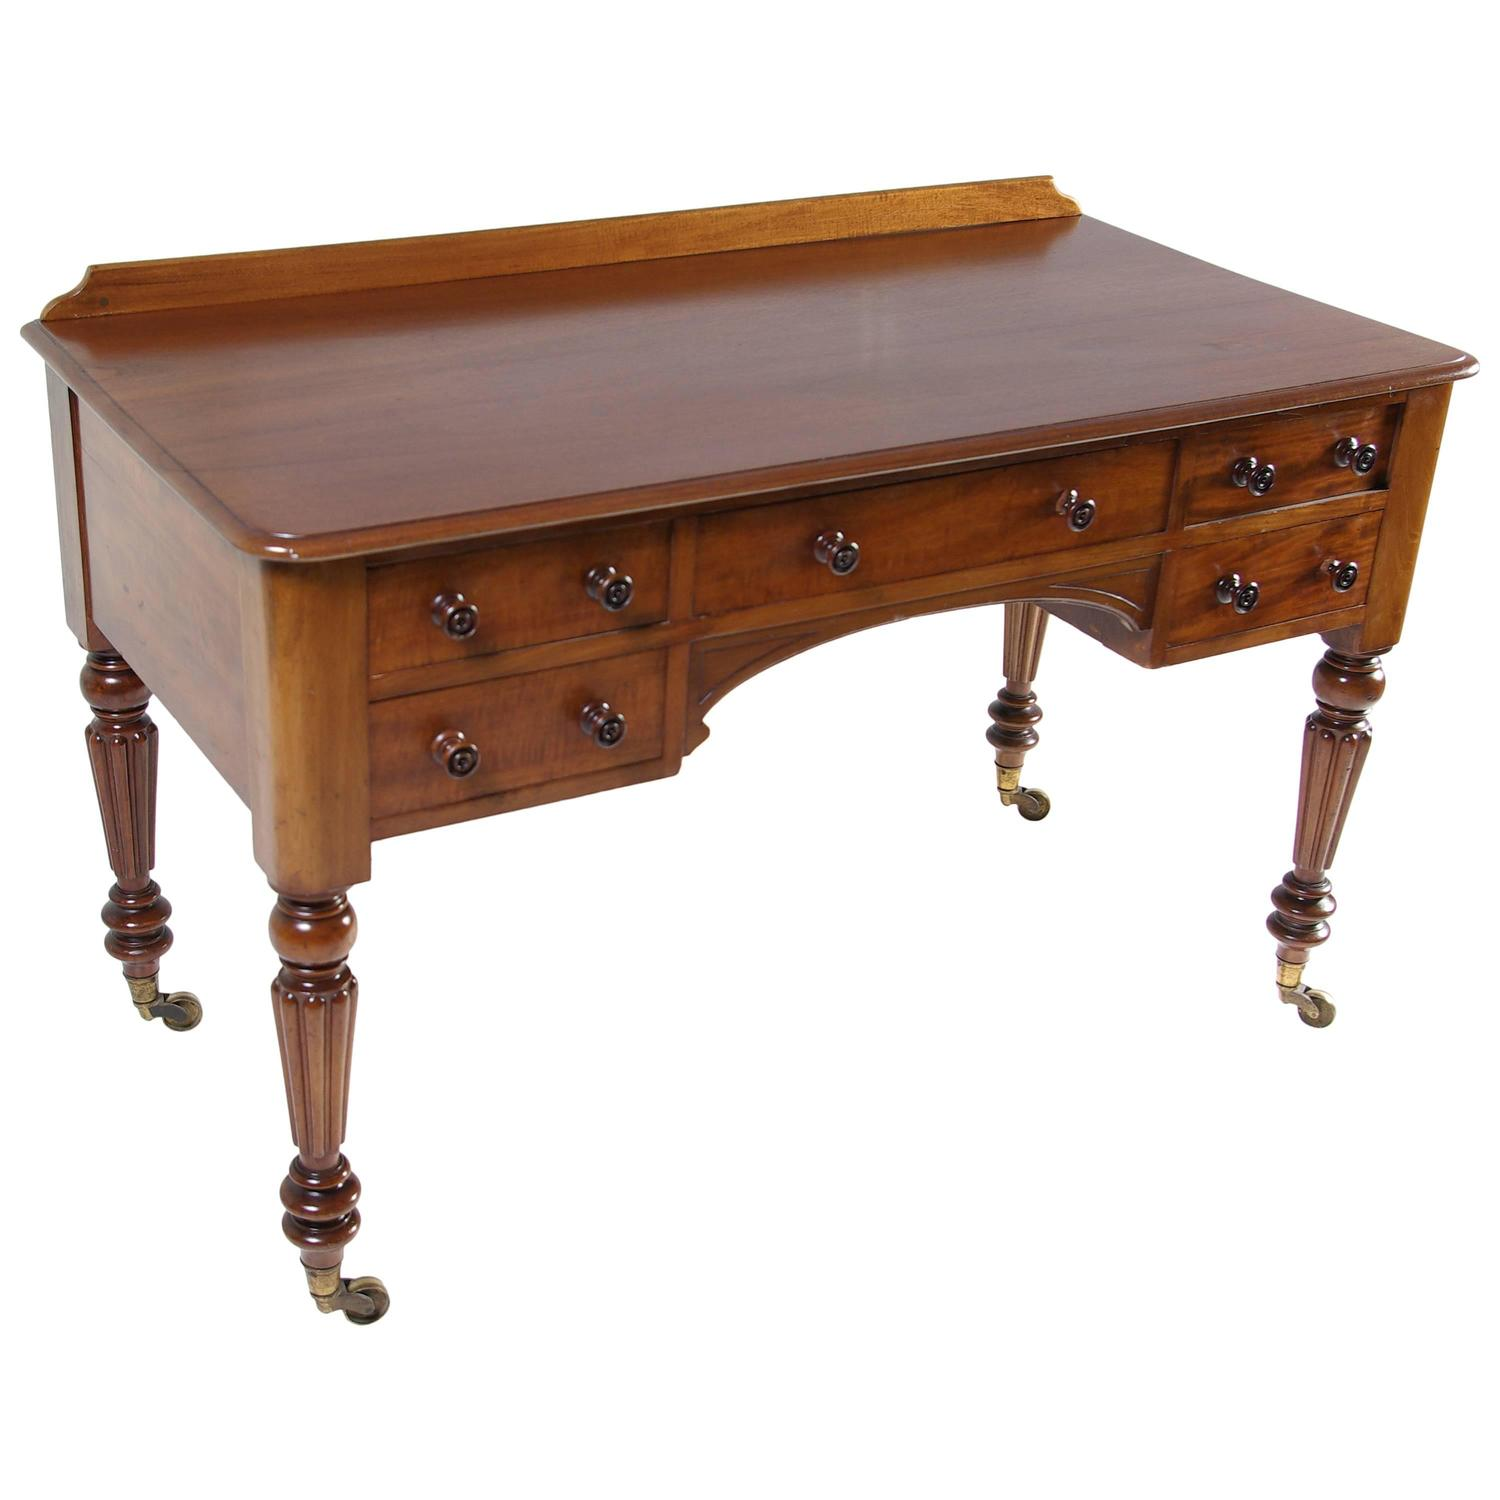 #A0662B  William 4th Mahogany Writing Desk Table With Five Drawers At 1stdibs with 1500x1500 px of Recommended Writing Tables With Drawers 15001500 save image @ avoidforclosure.info